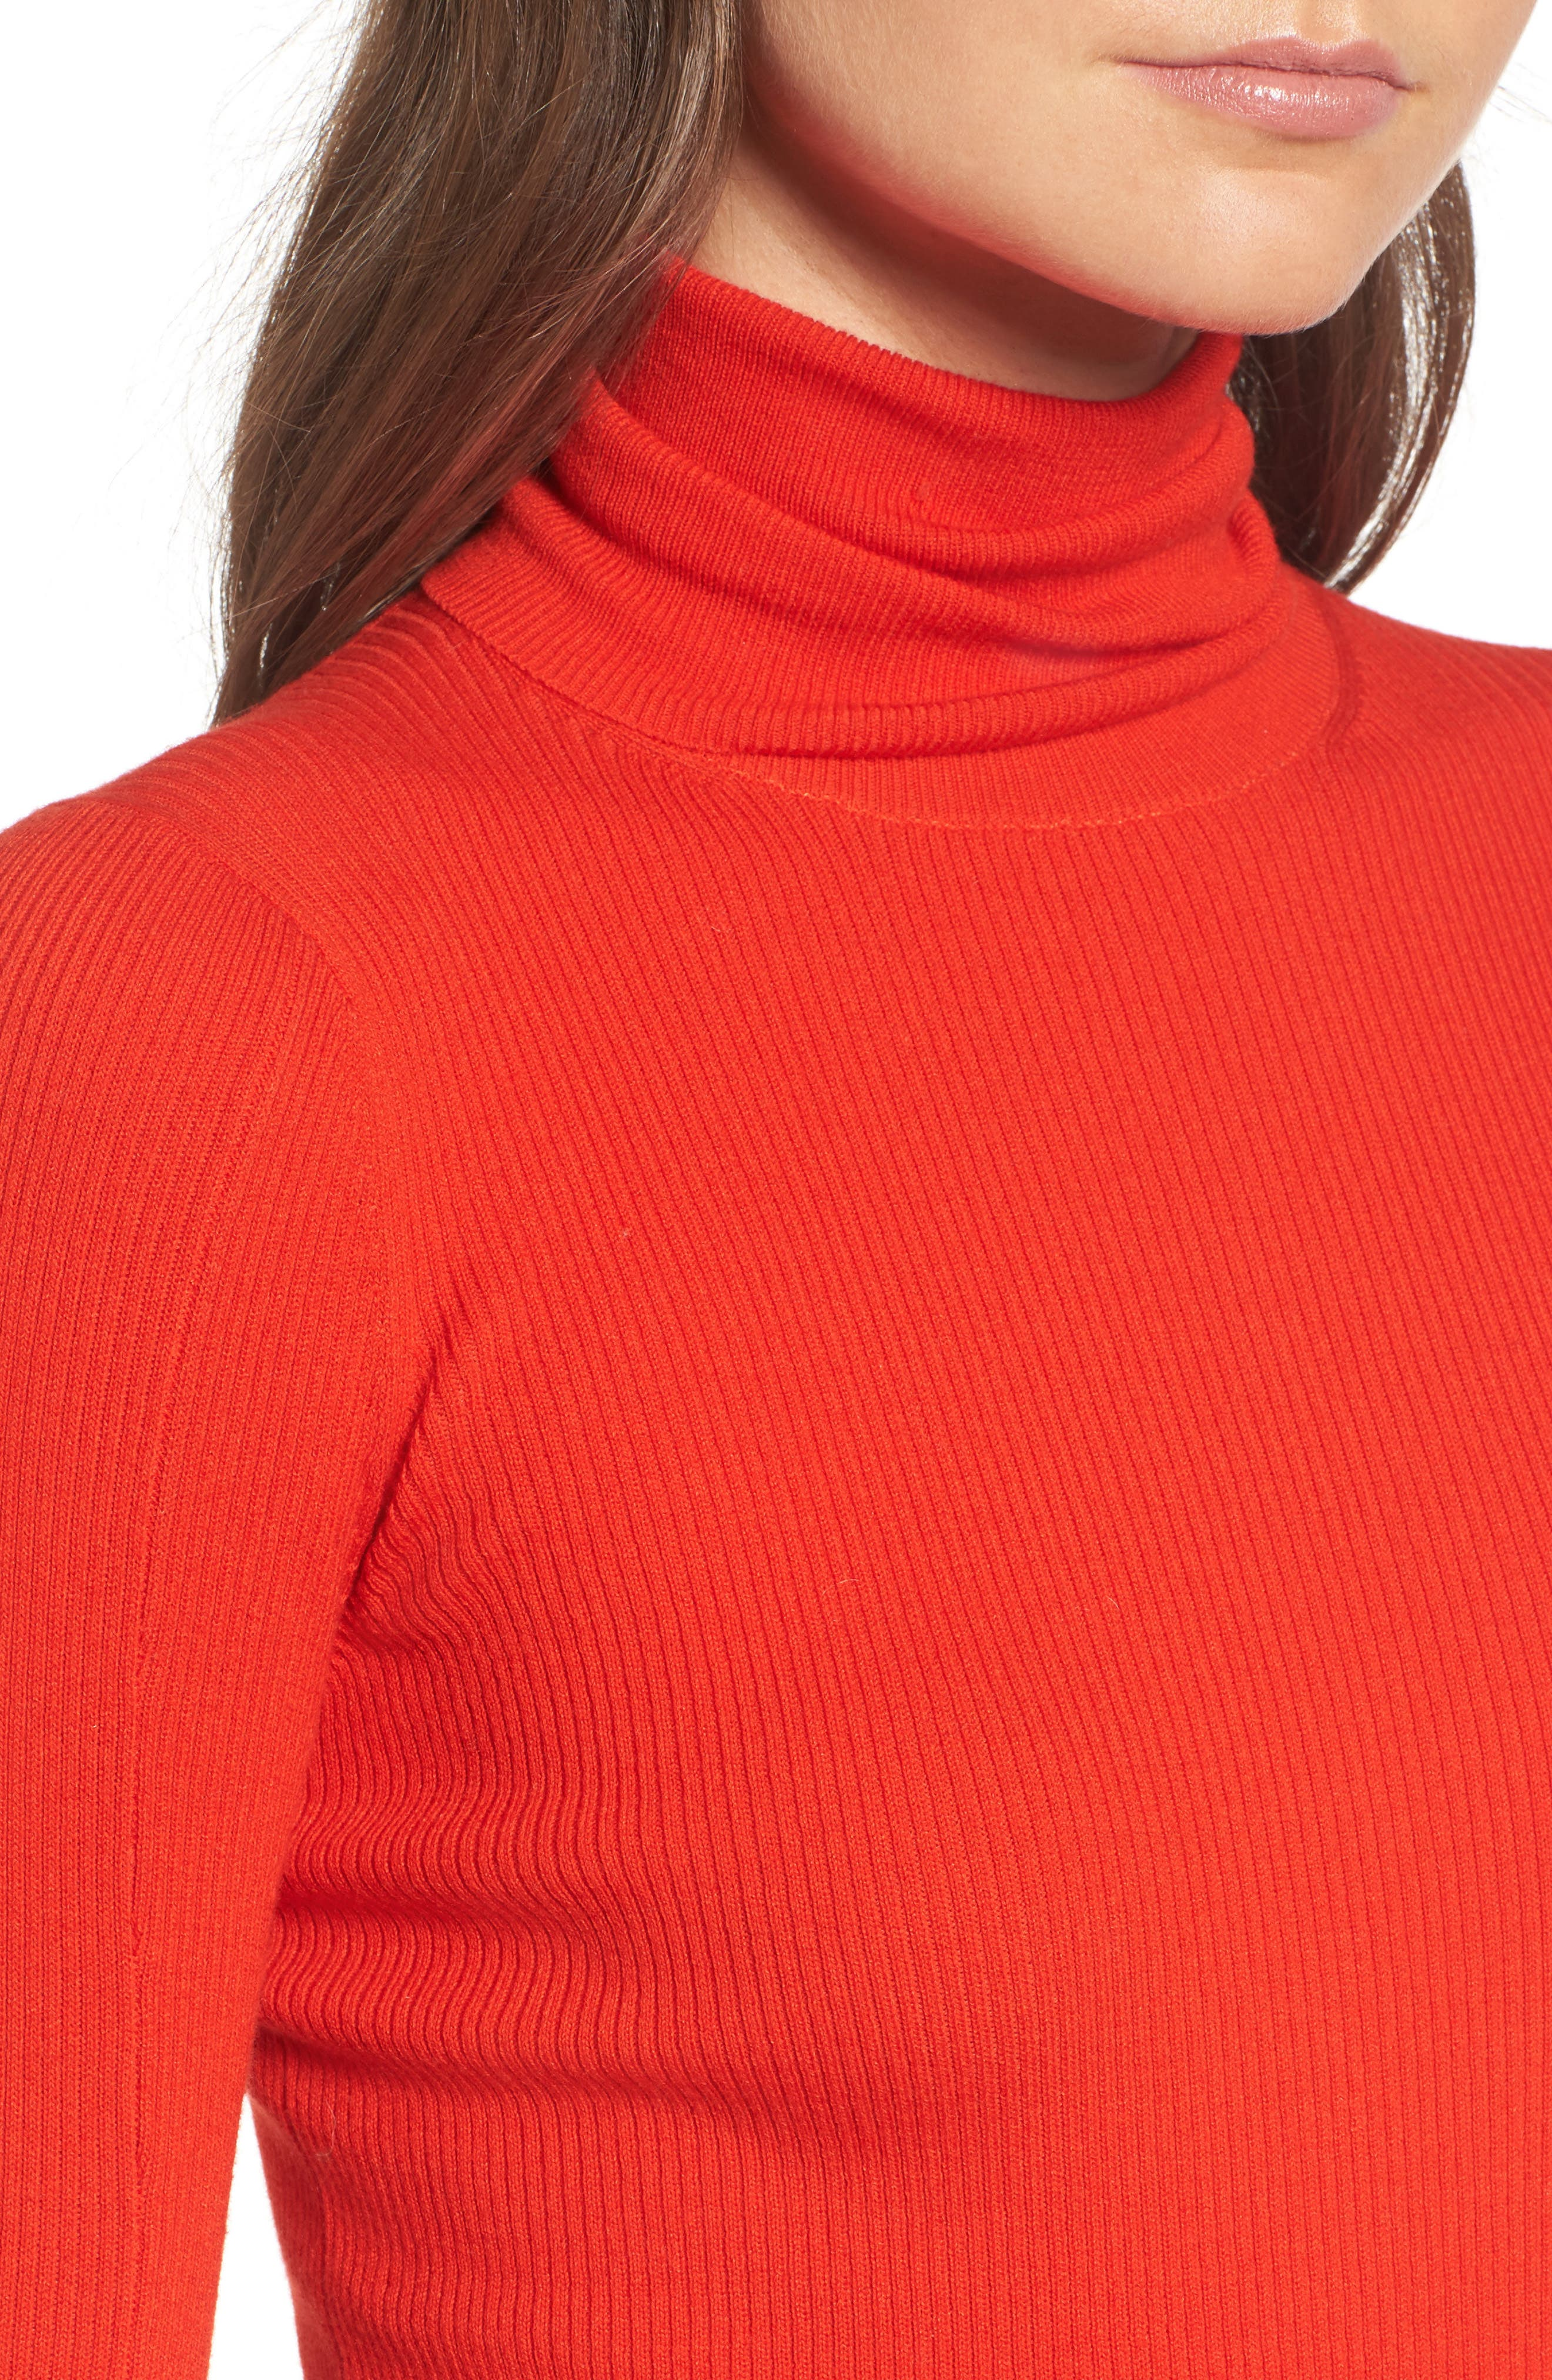 x Something Navy Turtleneck Sweater,                             Alternate thumbnail 7, color,